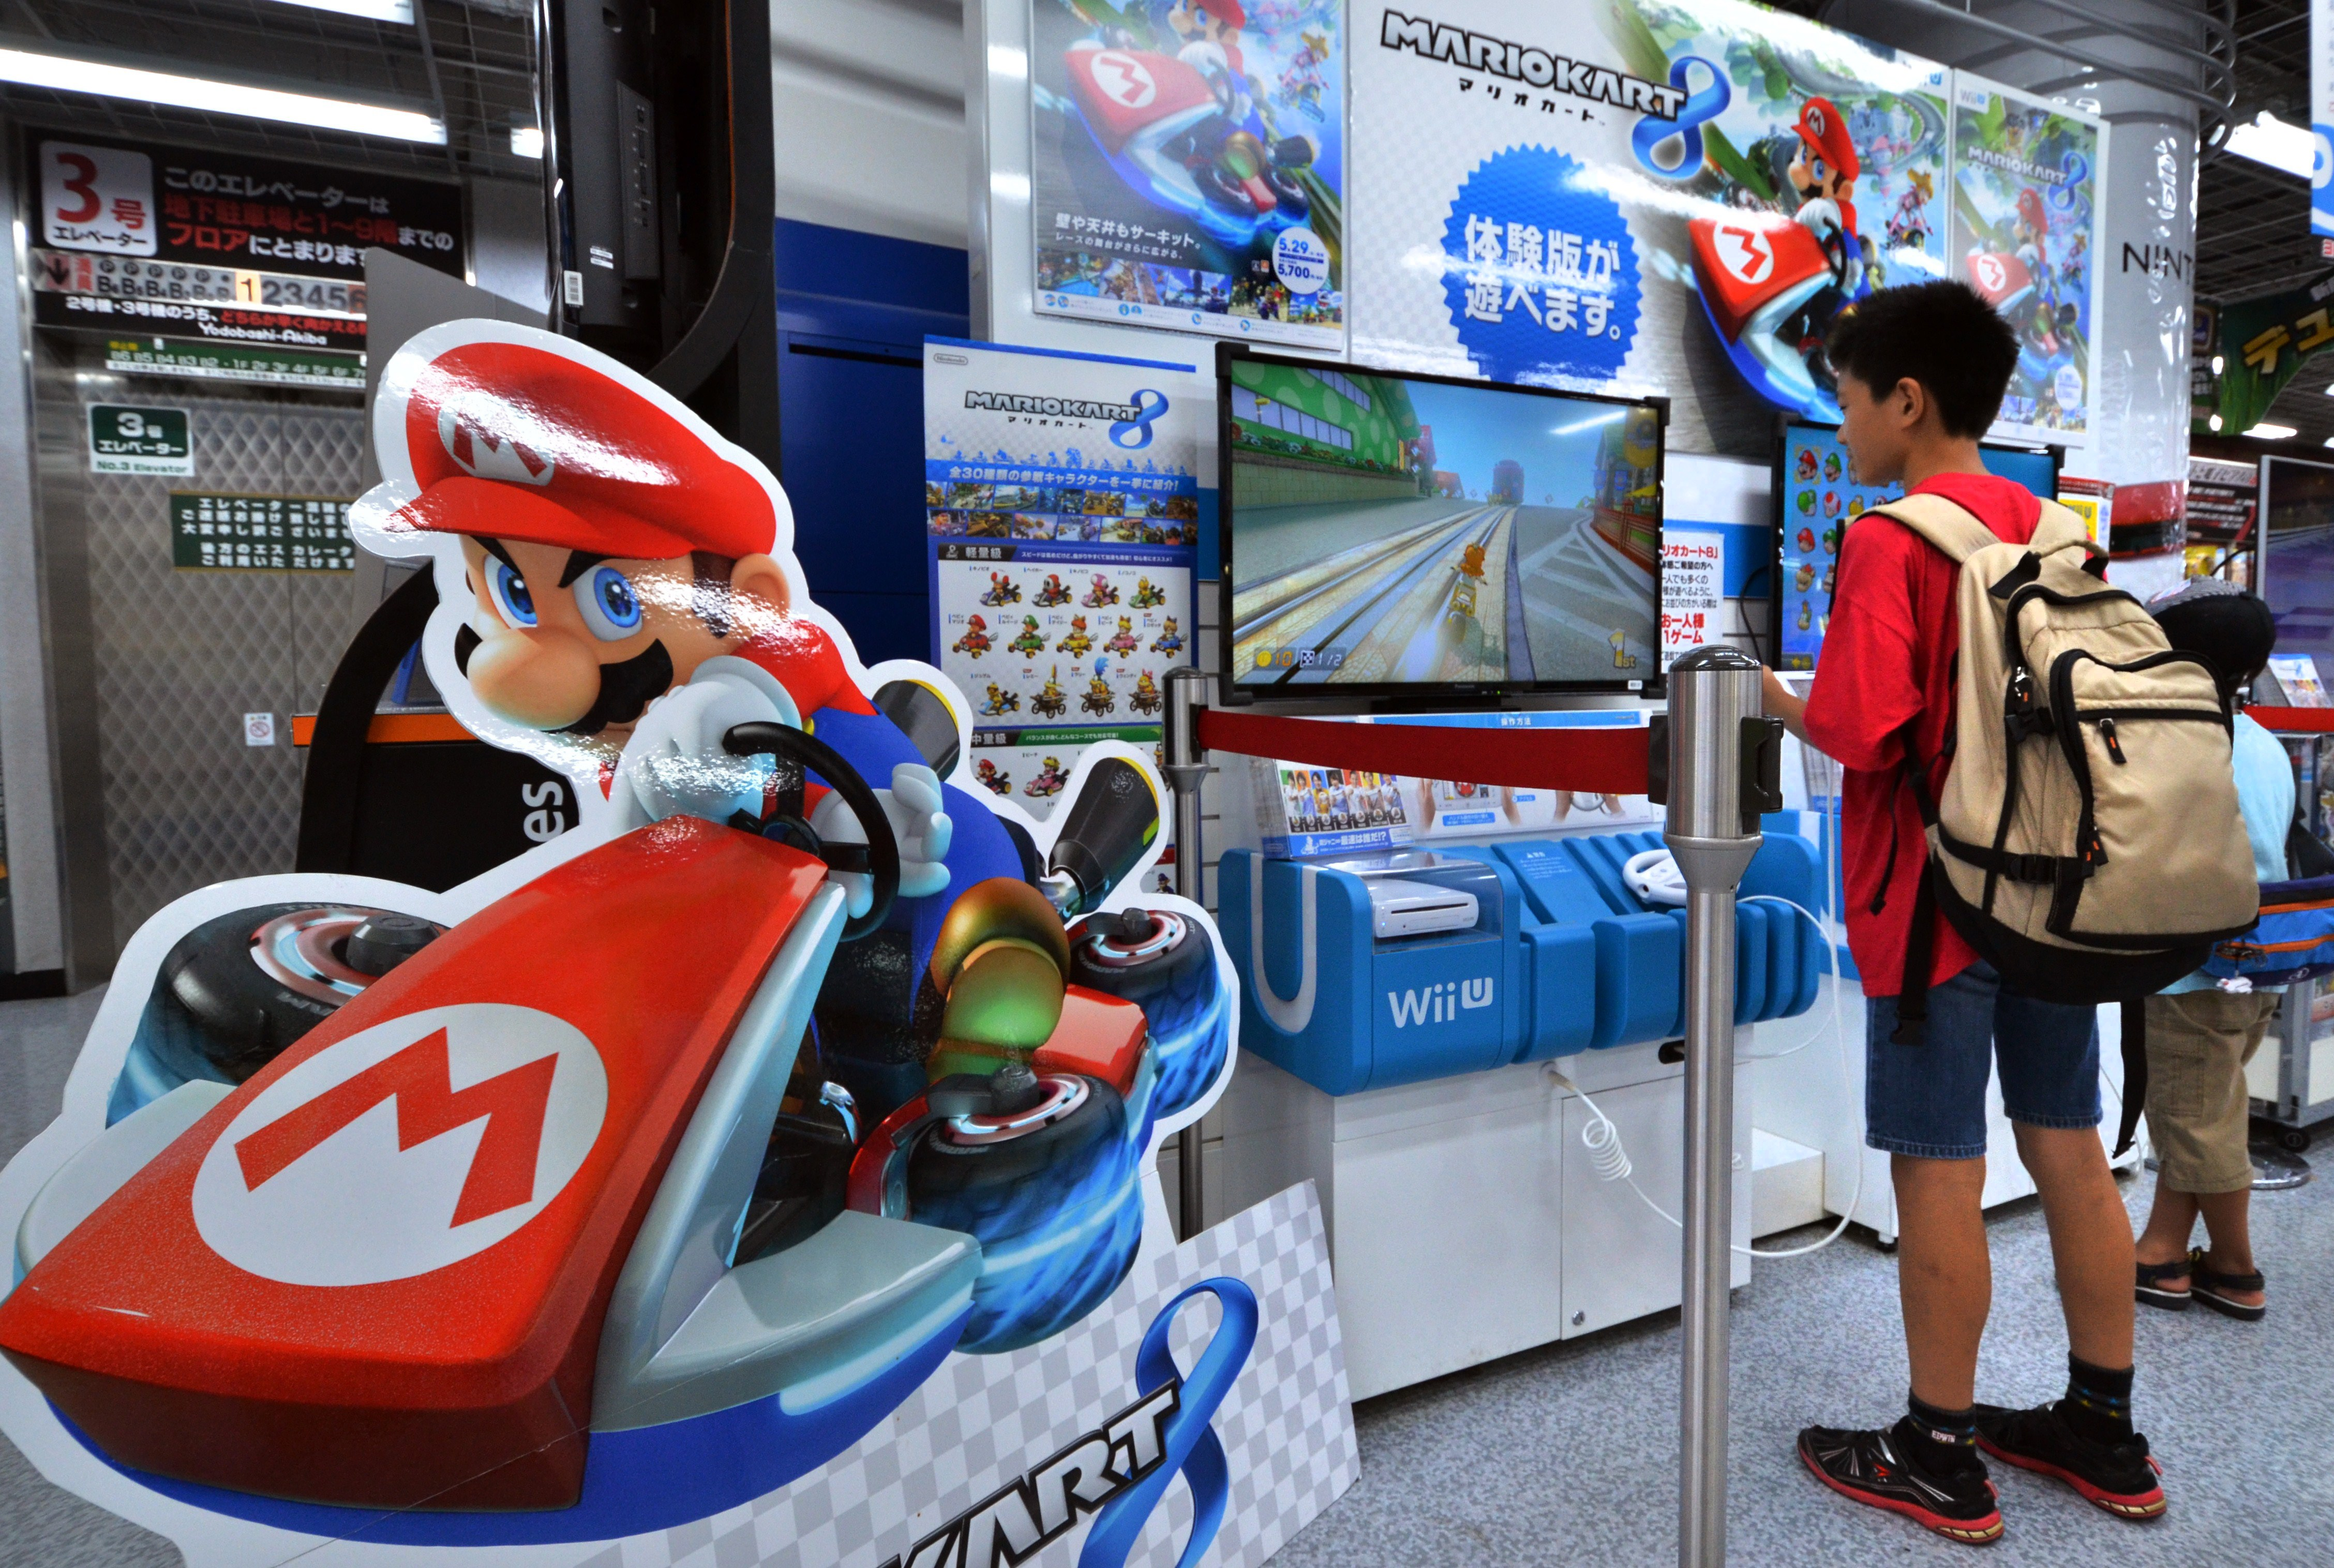 Customers play with Nintendo's videogame console Wii U at an electronics shop in Tokyo on July 30, 2014.